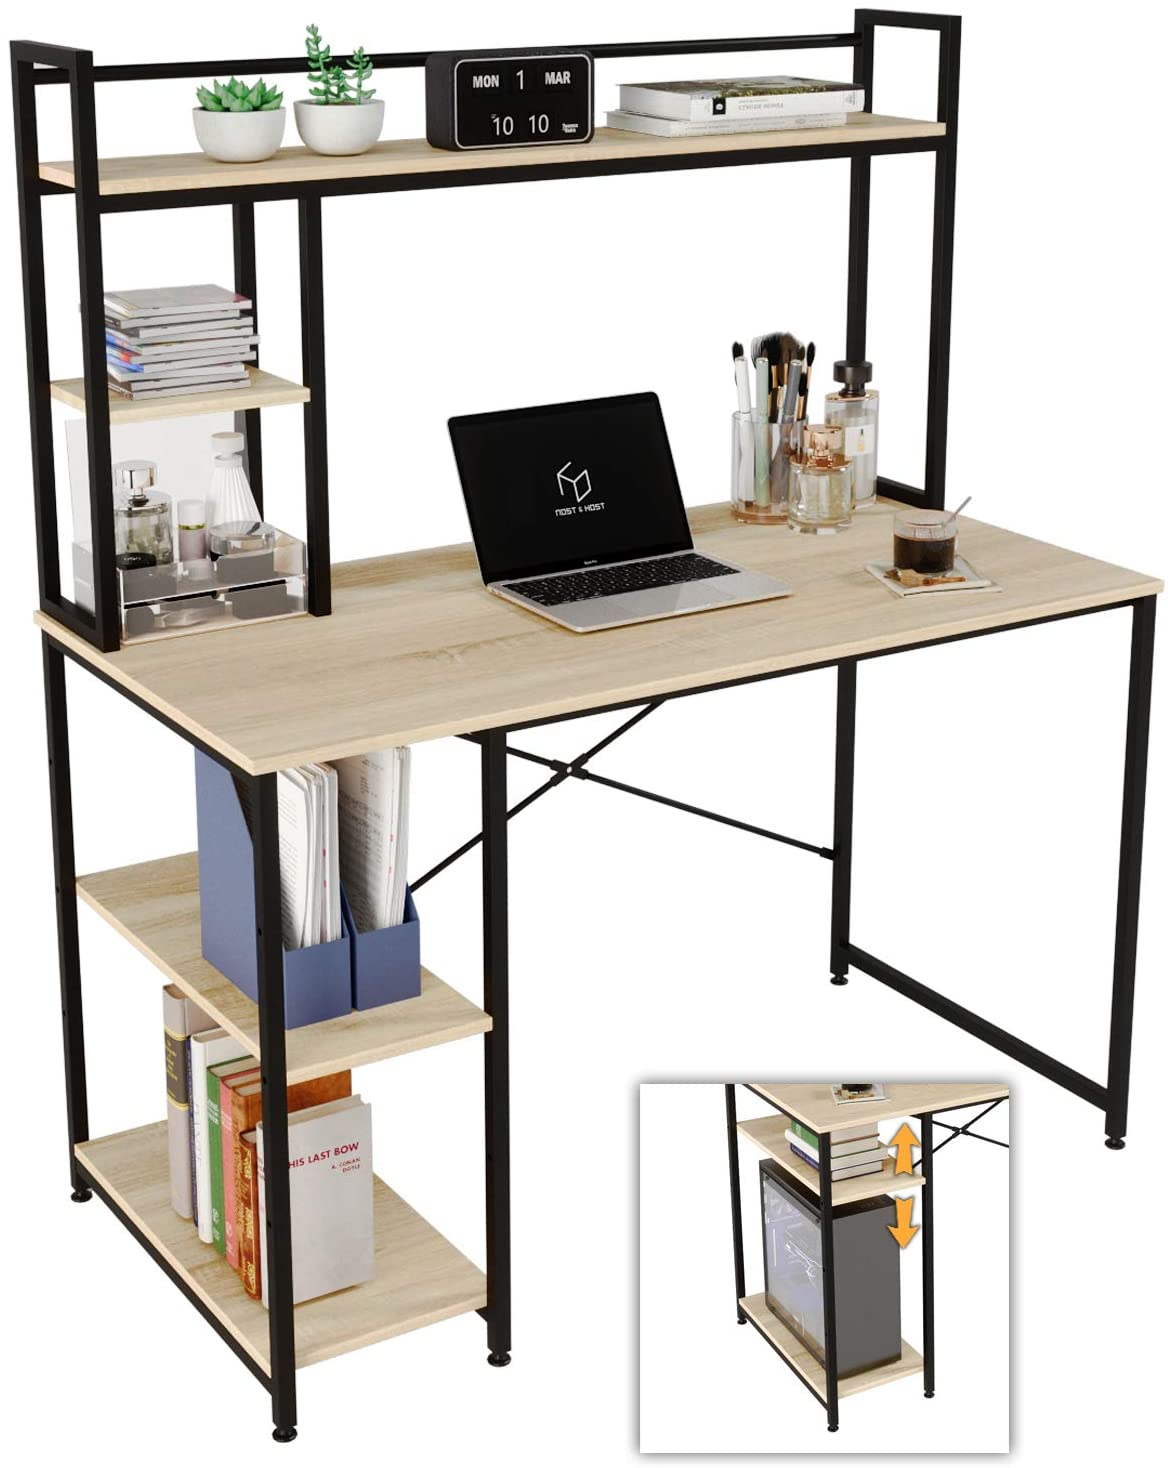 Nost & Host Computer Desk with Hutch and Bookshelf, Home Office Working Table with Hutch & 2 Tiers Adjustable Shelves, Sturdy Wooden Desk for Vanity Study Gaming, Easy Assemble, 47.2 inches, Oak